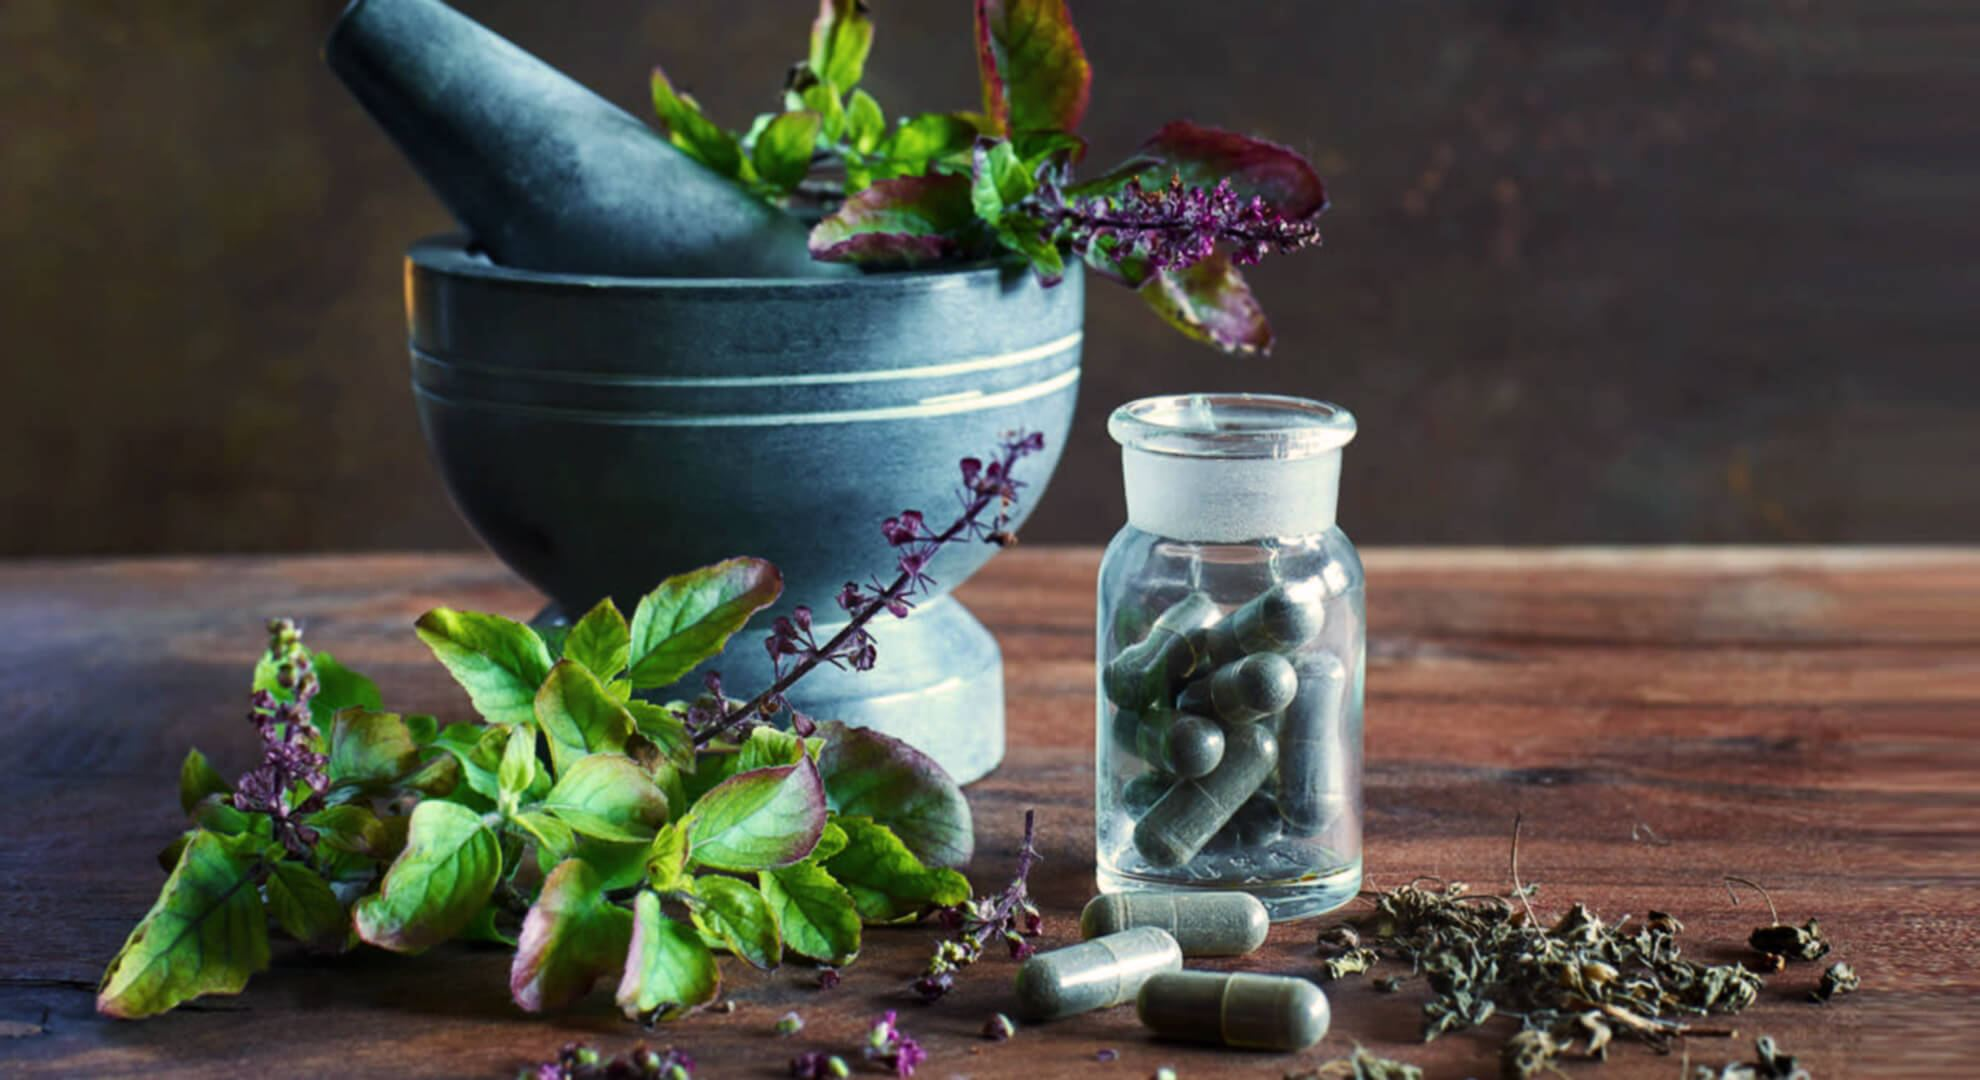 Herbal supplements for treating erection problems